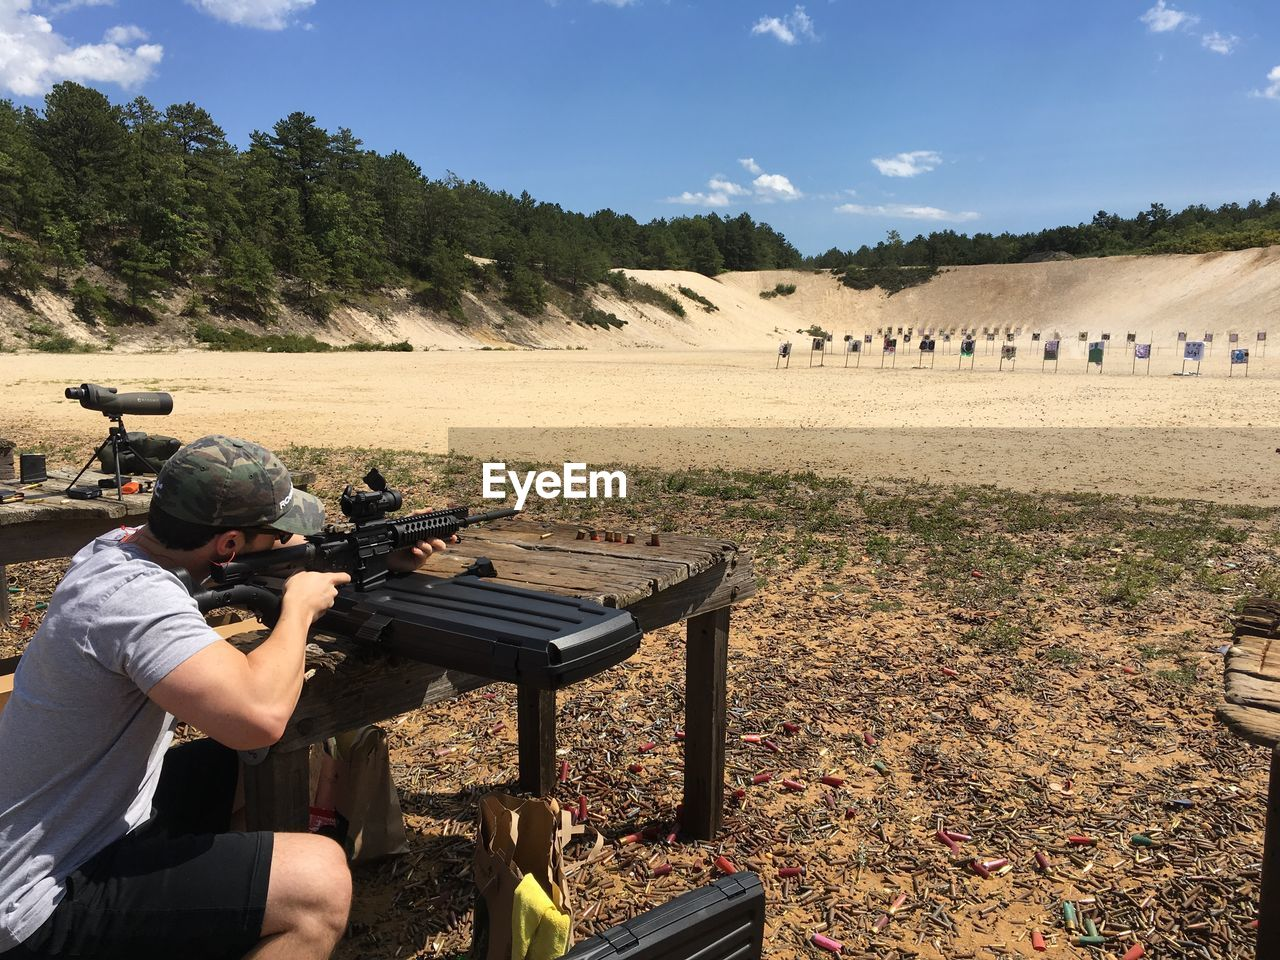 Man Practicing With Rifle At Shooting Range